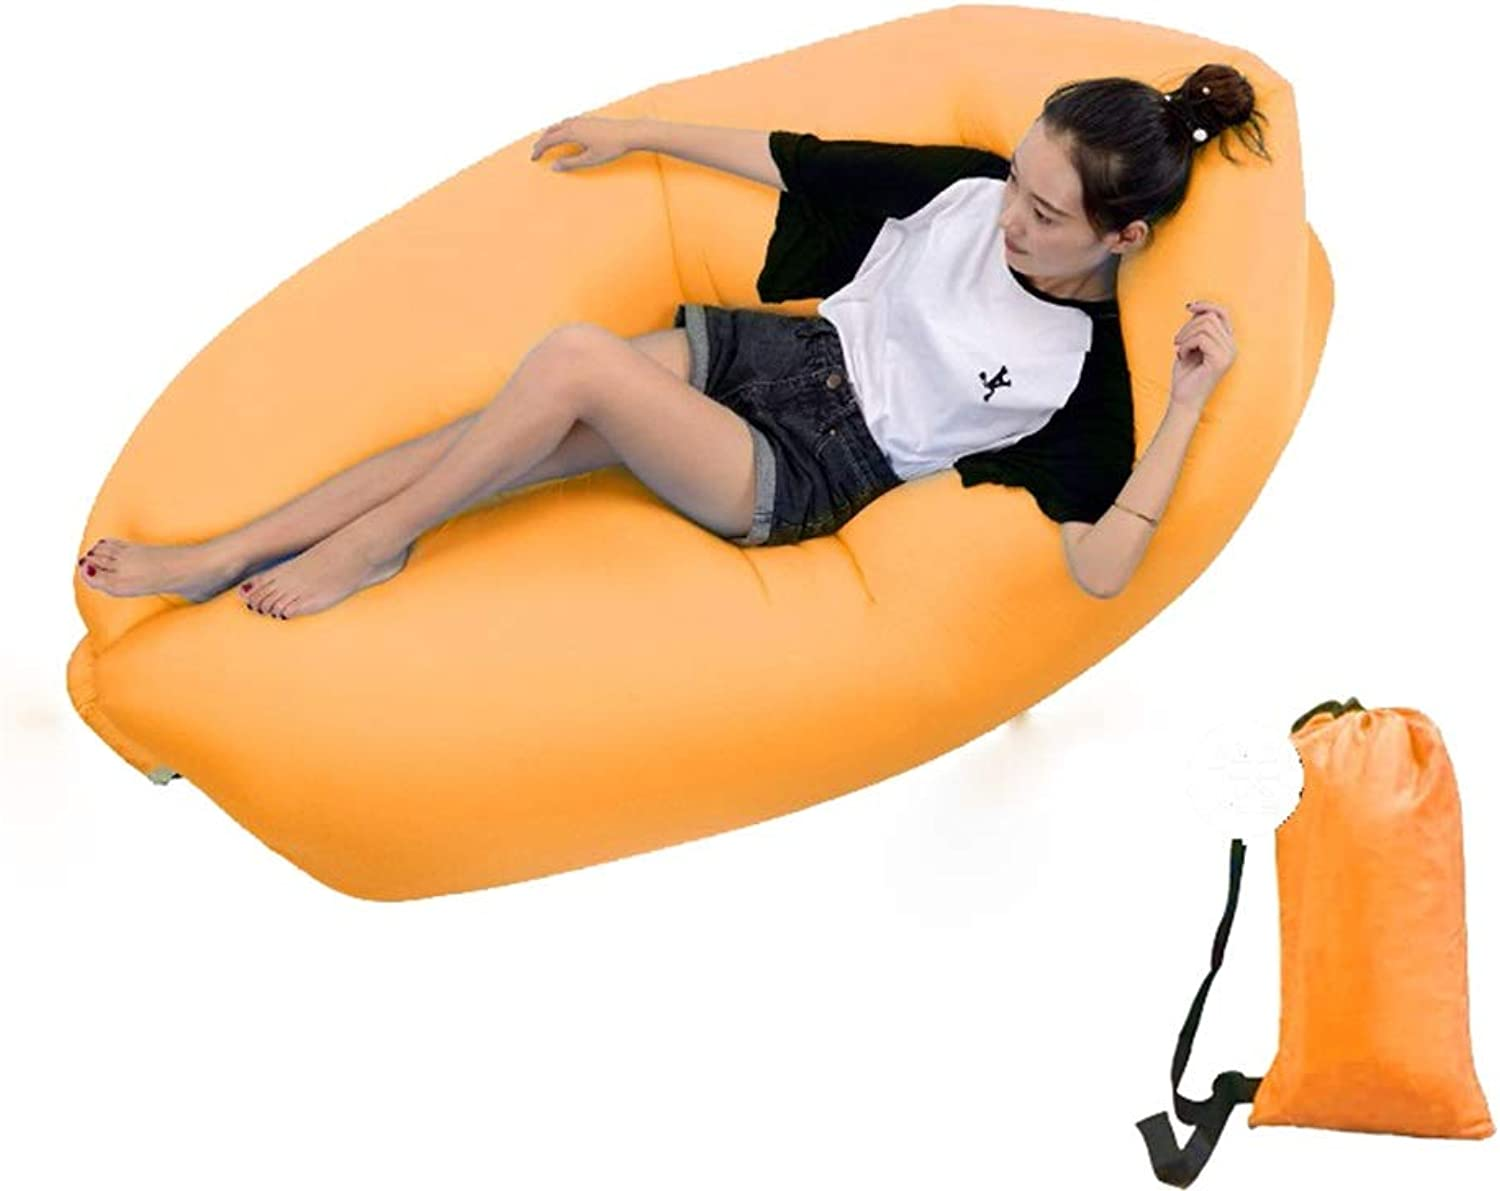 SCM Amphibious Air Sofa Multi-Function Lazy Couch Pool Park Outdoor Travel Portable Inflatable Bed Nap Air Cushion 150×63cm (color   orange)